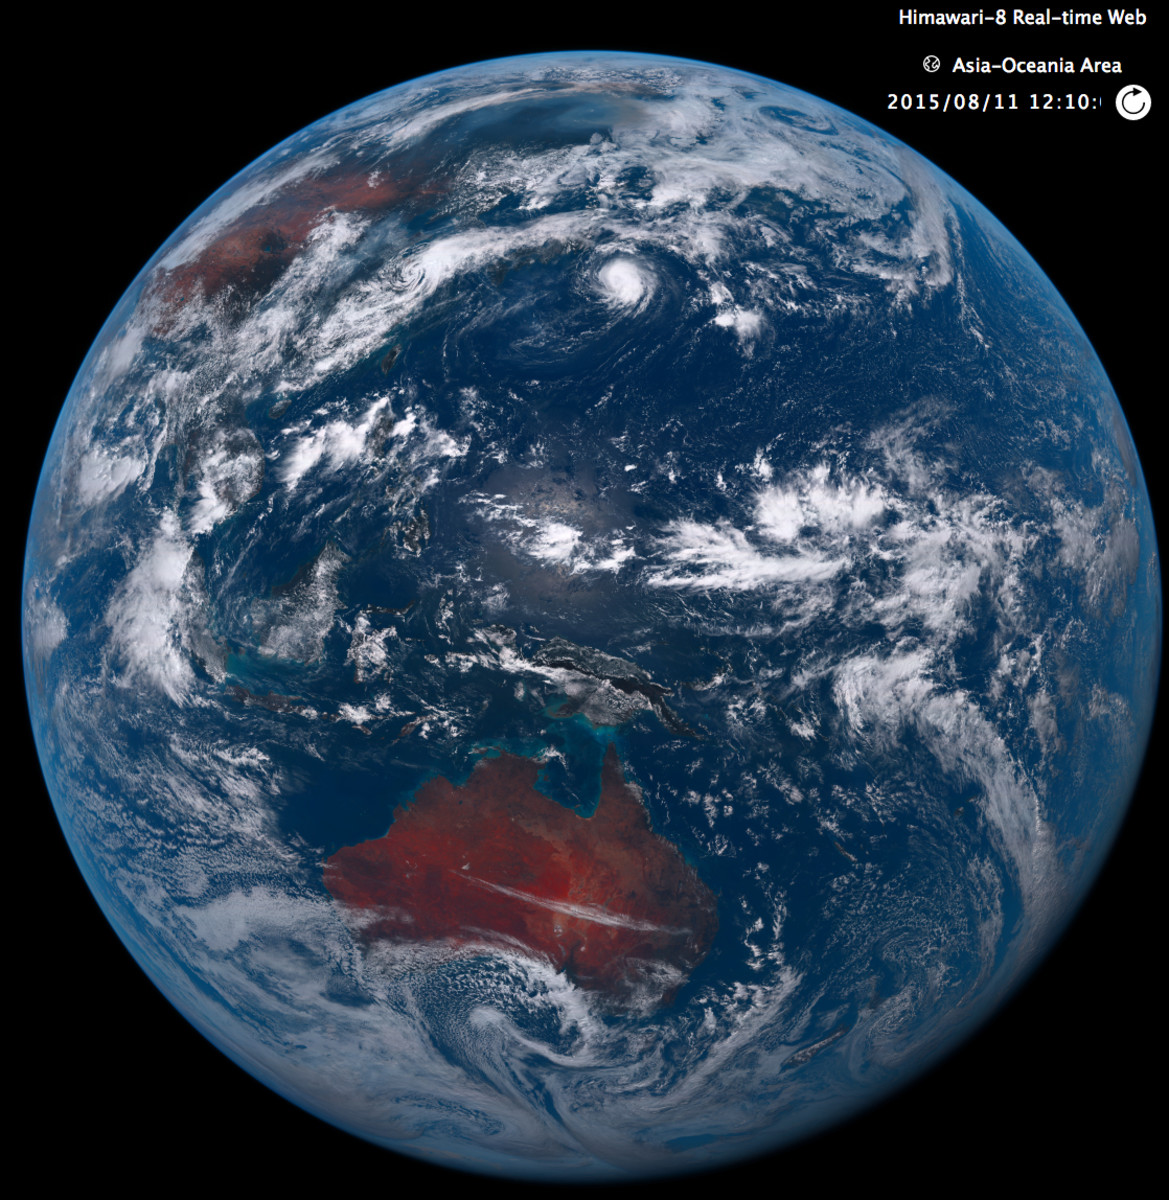 Japan's new Himawari-8 weather satellite takes many realtime images every day. Check the link and zoom in — the resolution is far better than this!